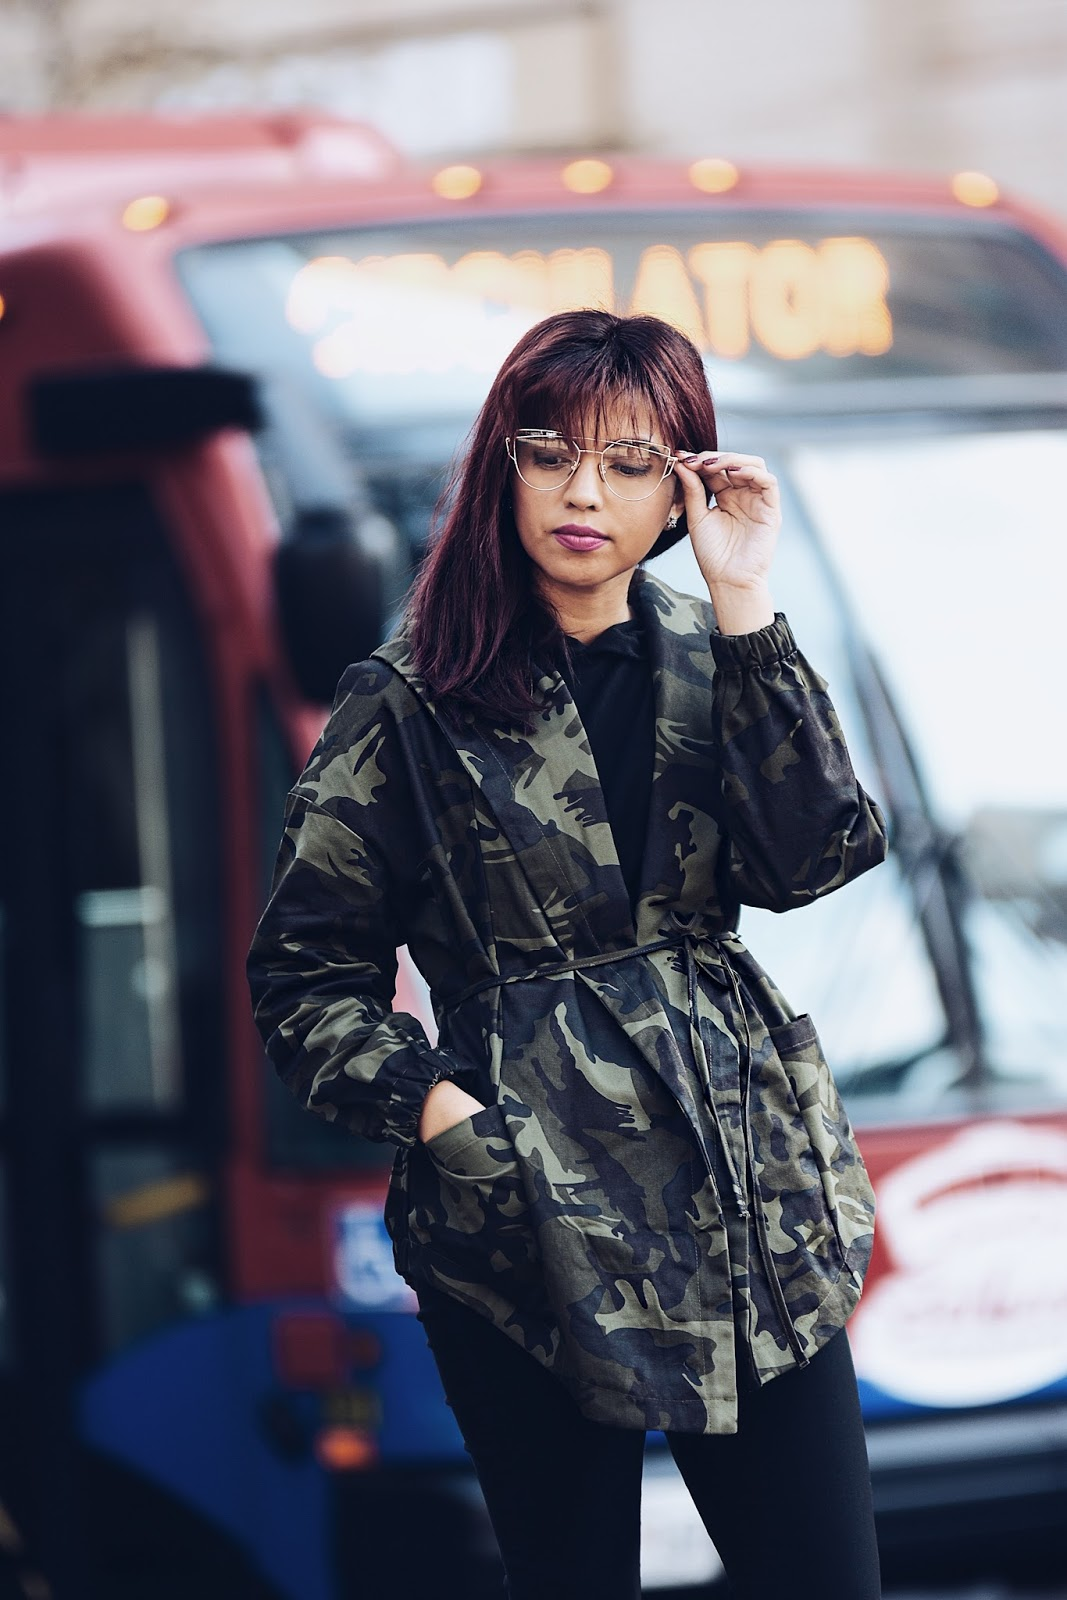 New Hair Style-MariEstilo-Camo Jacket-Look of the day-fashionblogger-boots of the day-fashionista-dcblogger-armandhugon